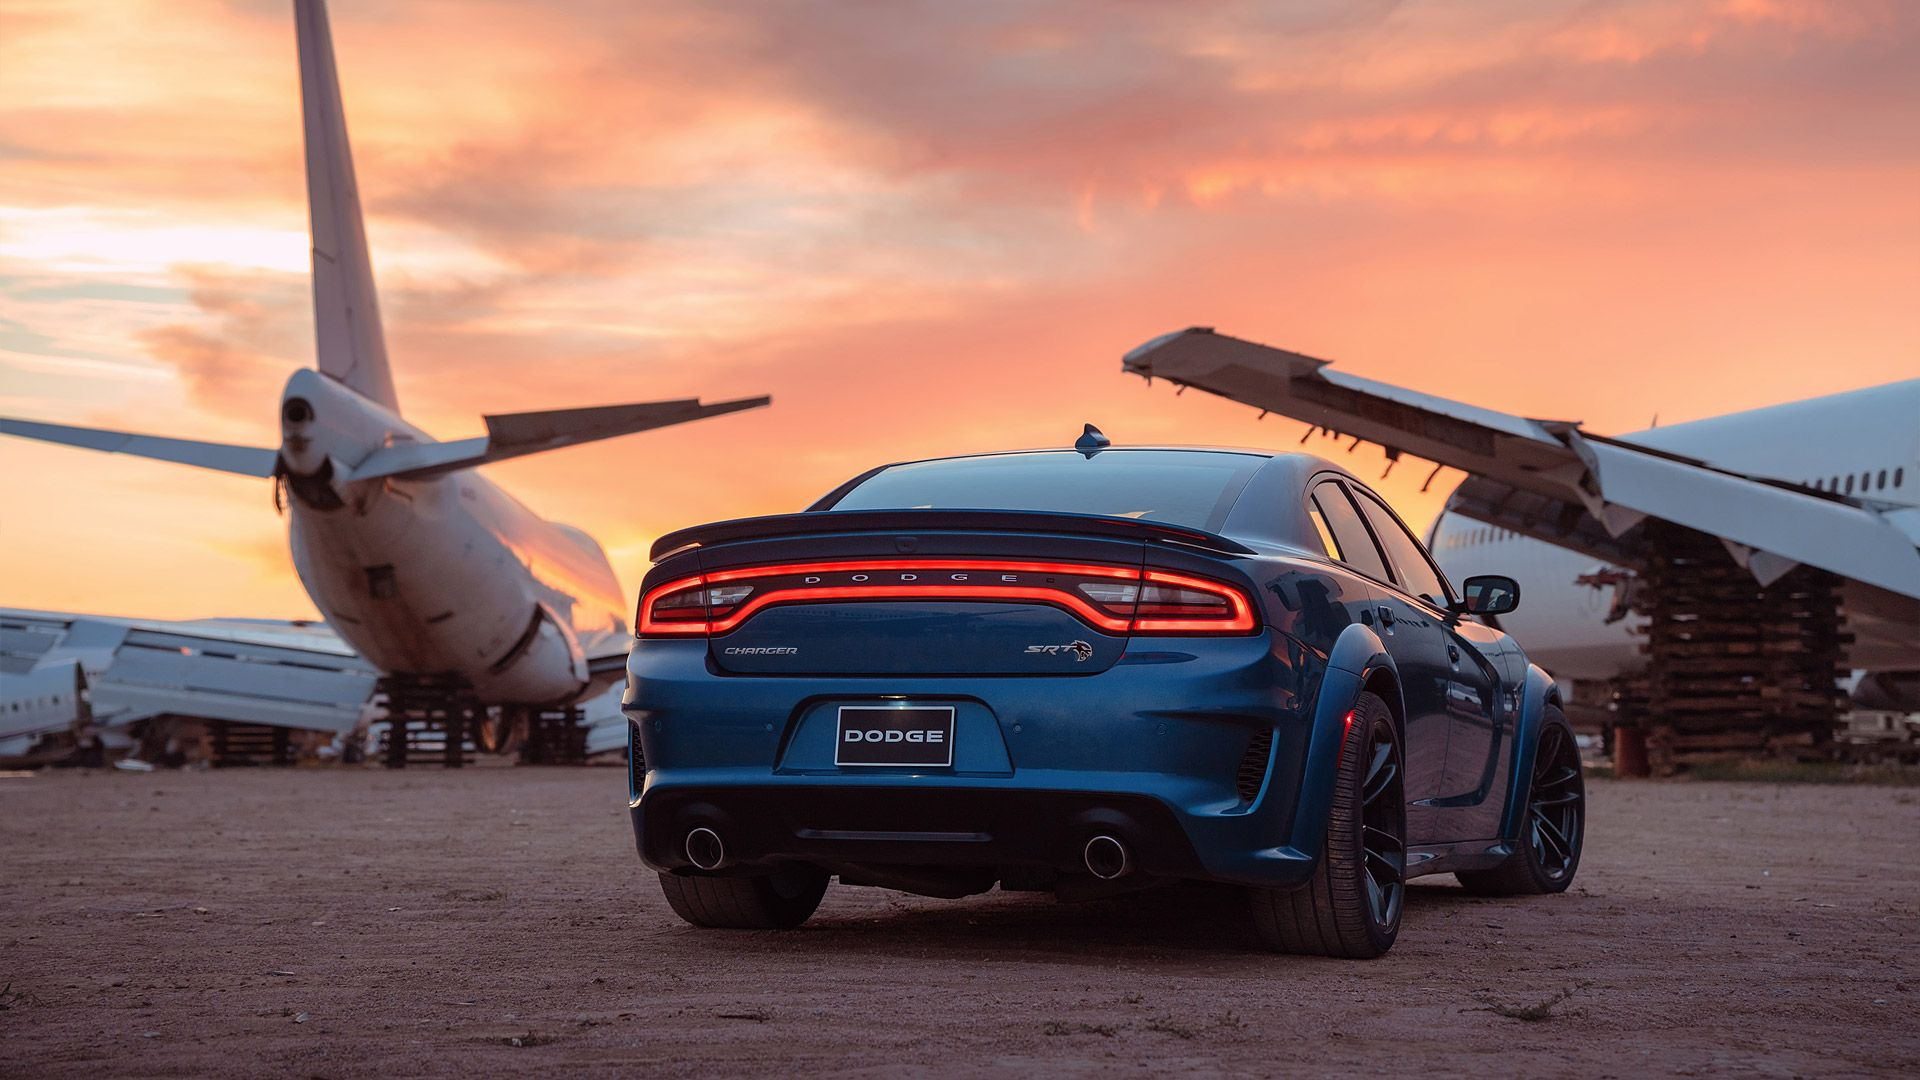 Dodge Charger Wallpapers Top Free Dodge Charger Backgrounds Wallpaperaccess